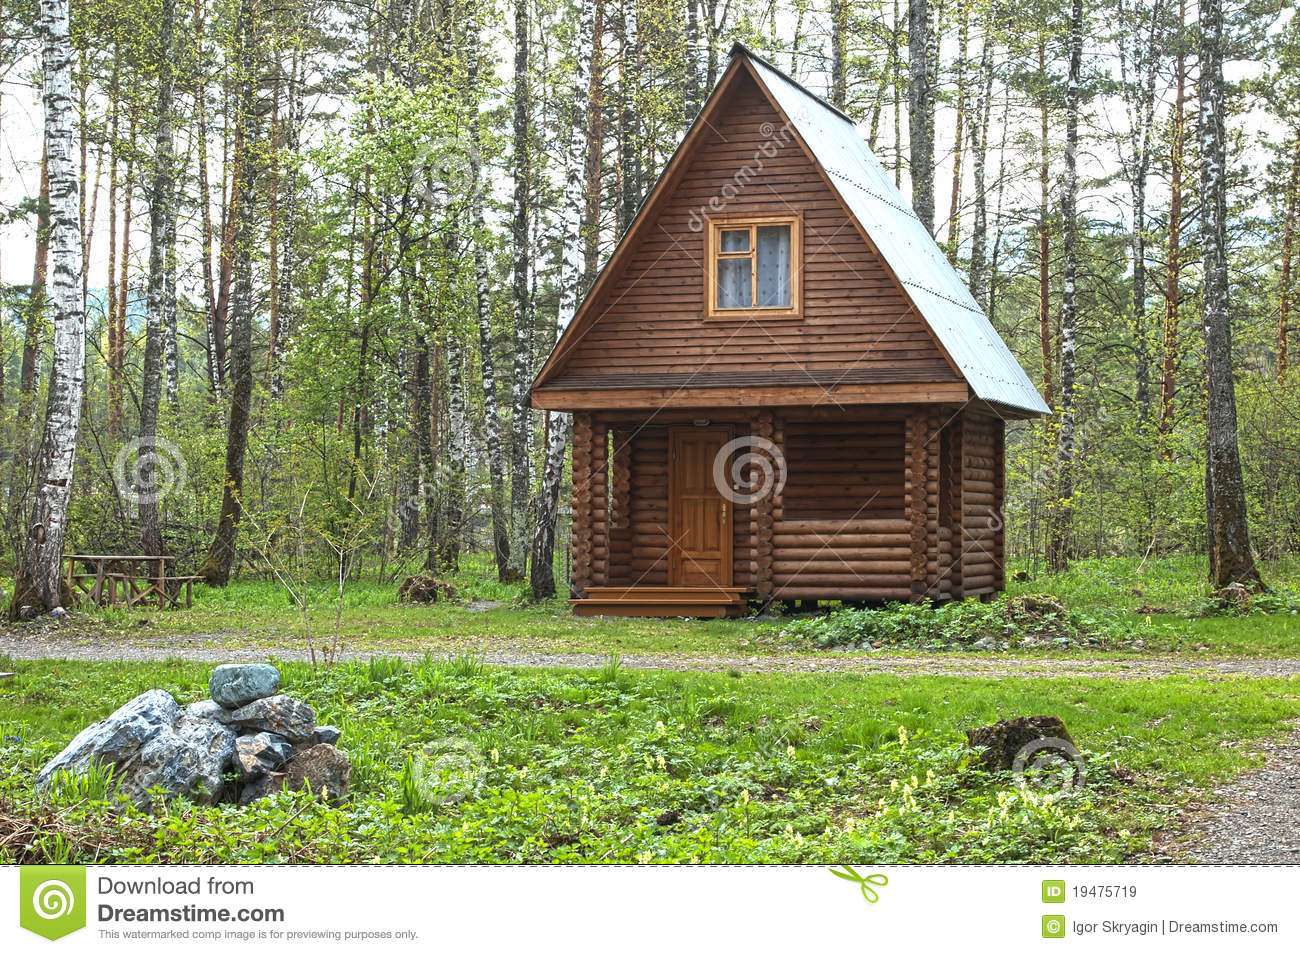 Shed Style Homes Wooden Small House In A Wood Royalty Free Stock Images